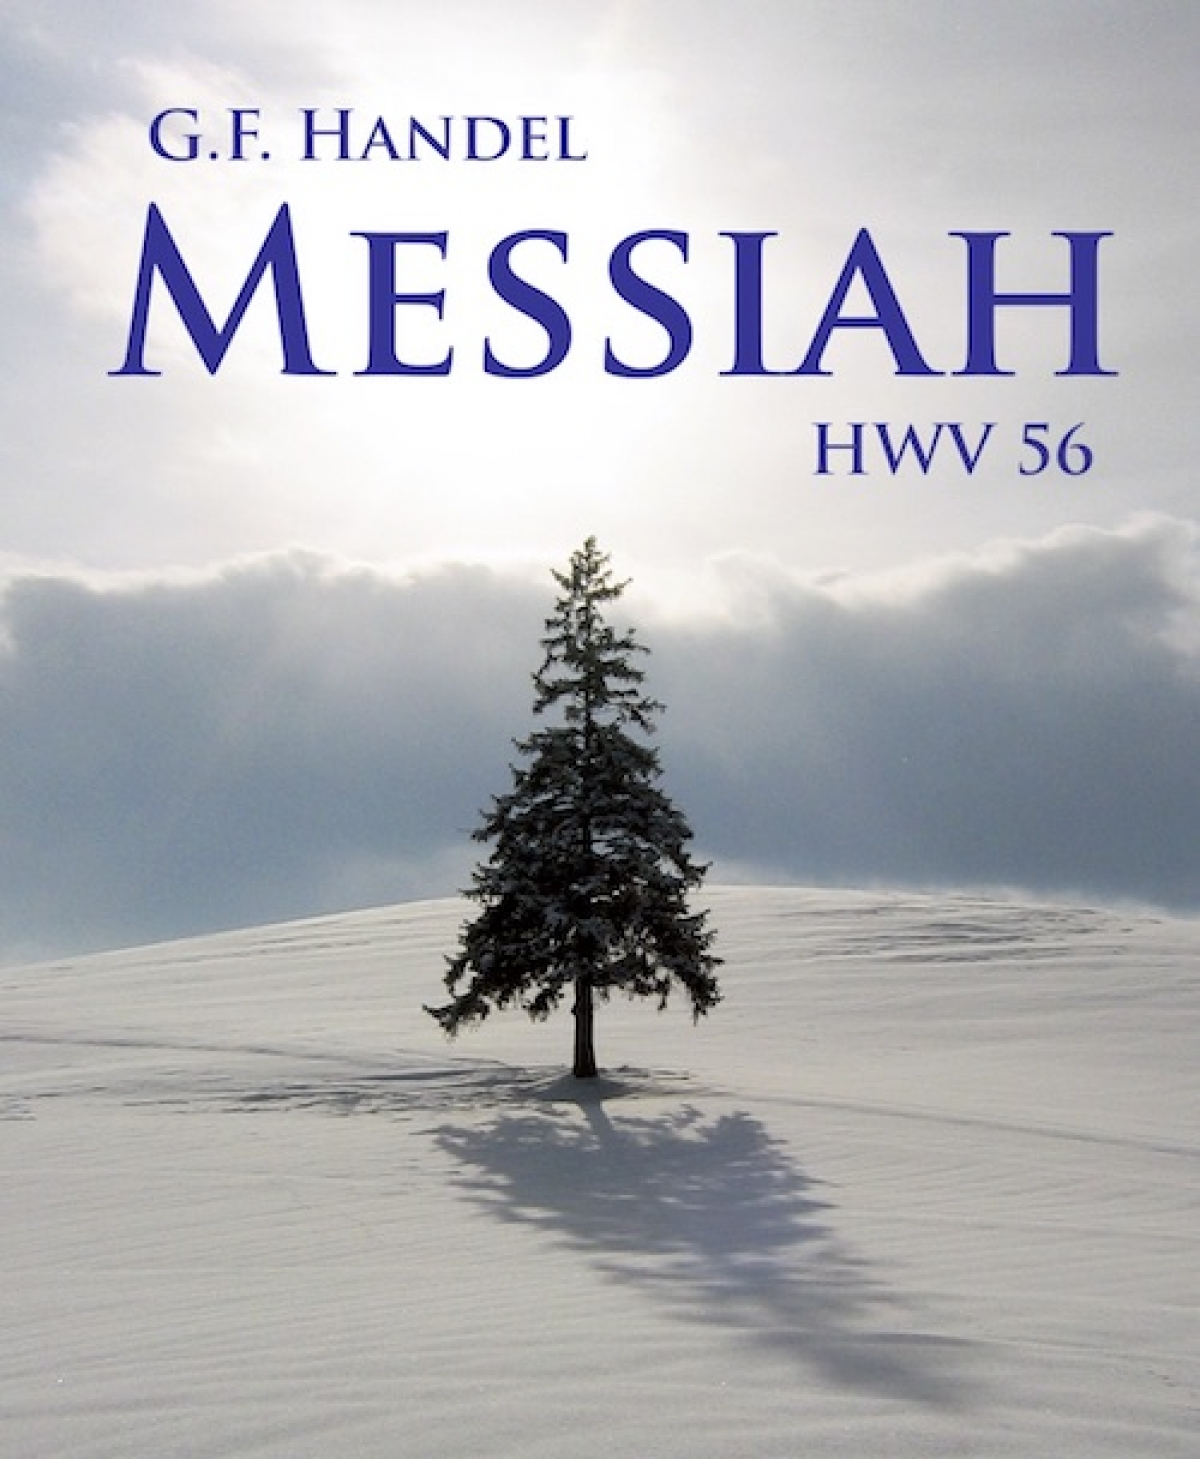 Handel's Messiah with Rideau Chorale: Dec. 7-8, 2017